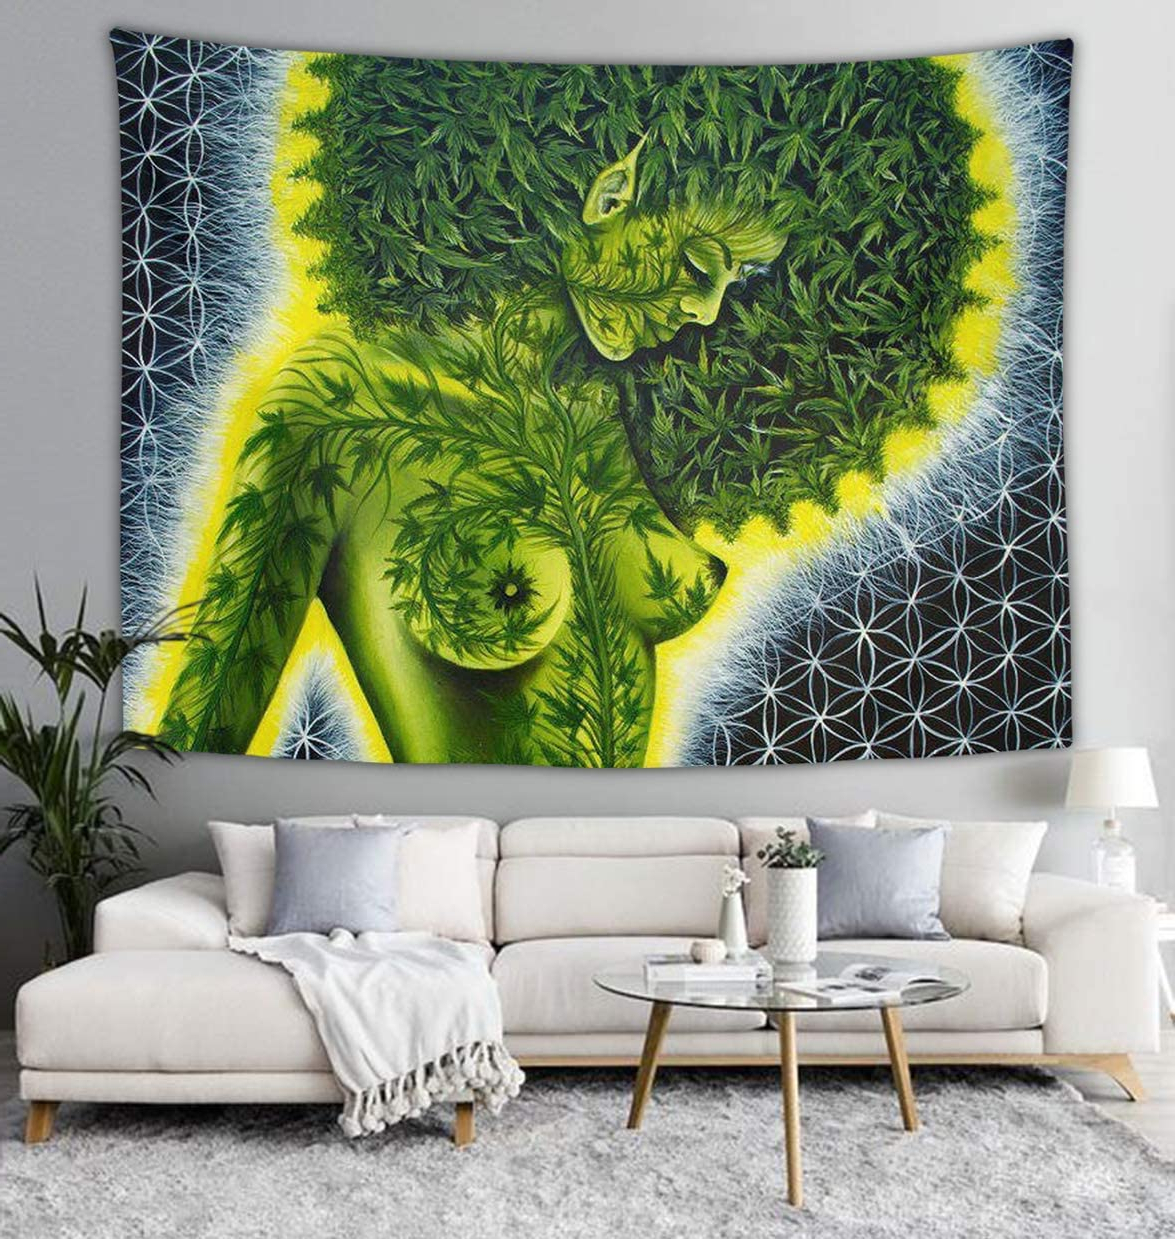 Recent Blended Fabric Leaf Wall Hangings With Beauty Green Marijuana Weed Leaf Wall Tapestry Hippie Art Tapestry Wall Hanging Home Decor Extra Large Tablecloths 40x60 Inches For Bedroom Living (View 14 of 20)